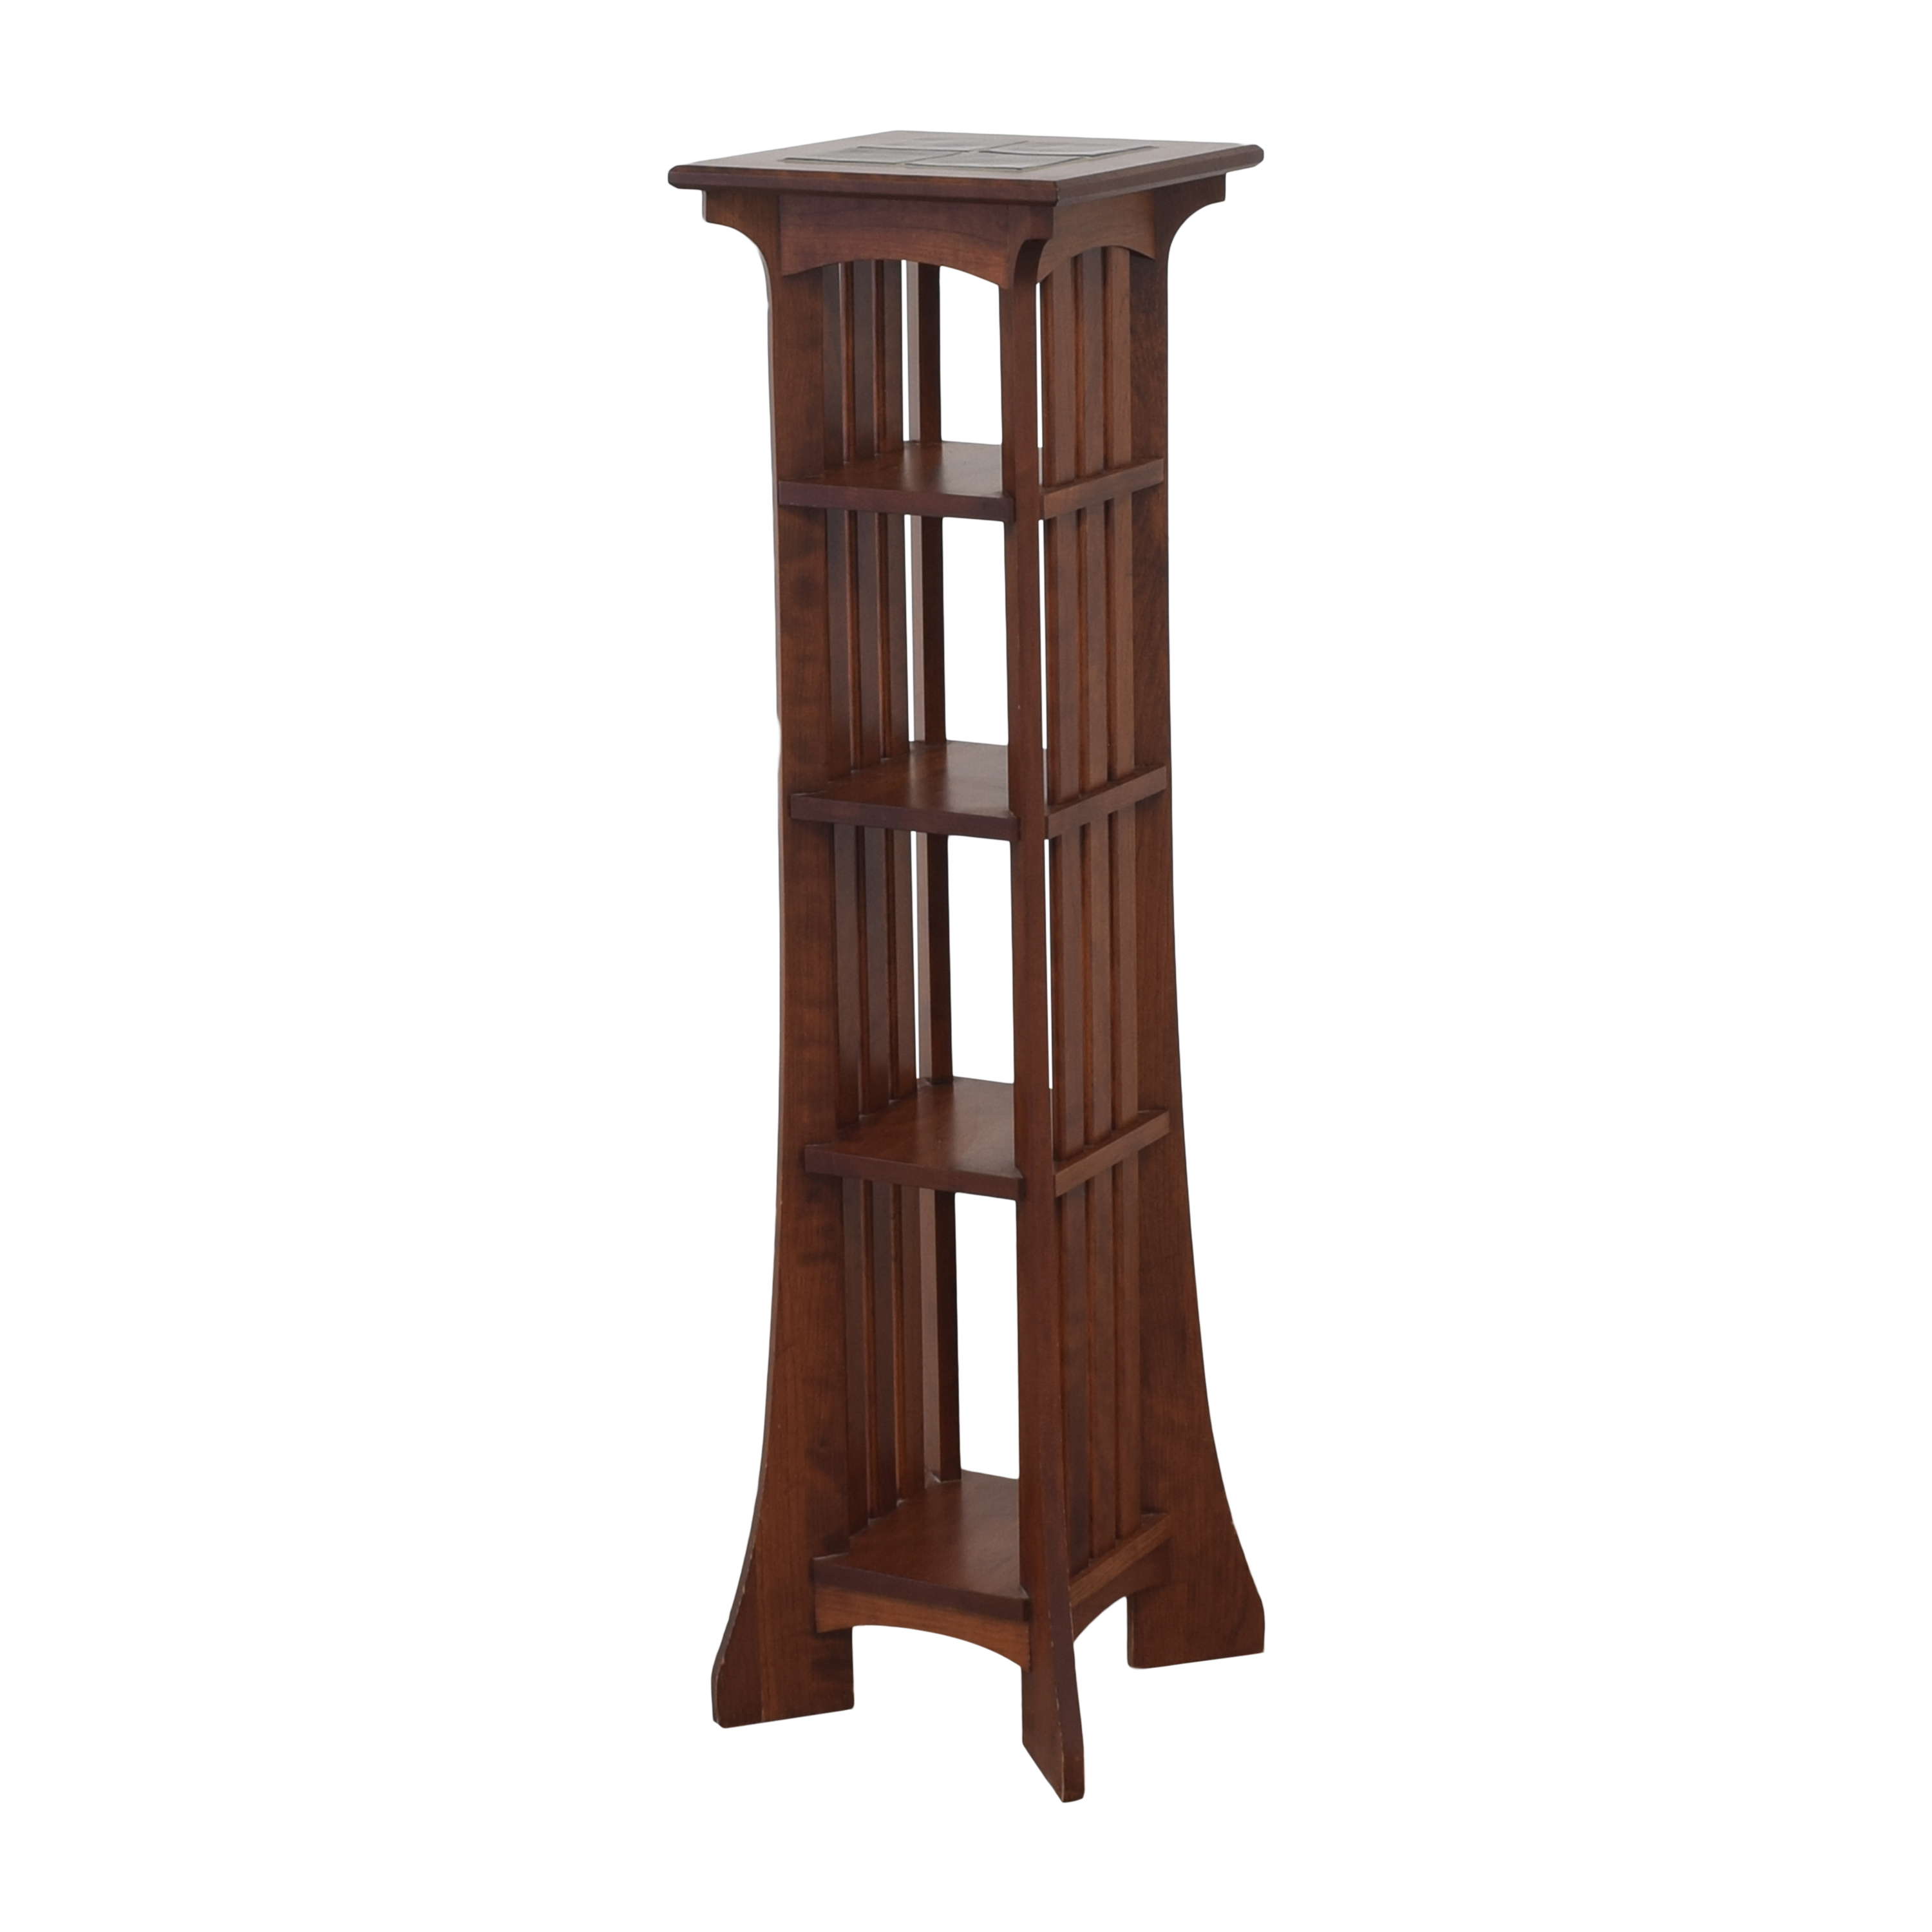 buy Ethan Allen American Impressions Five Tier Plant Stand Ethan Allen Bookcases & Shelving